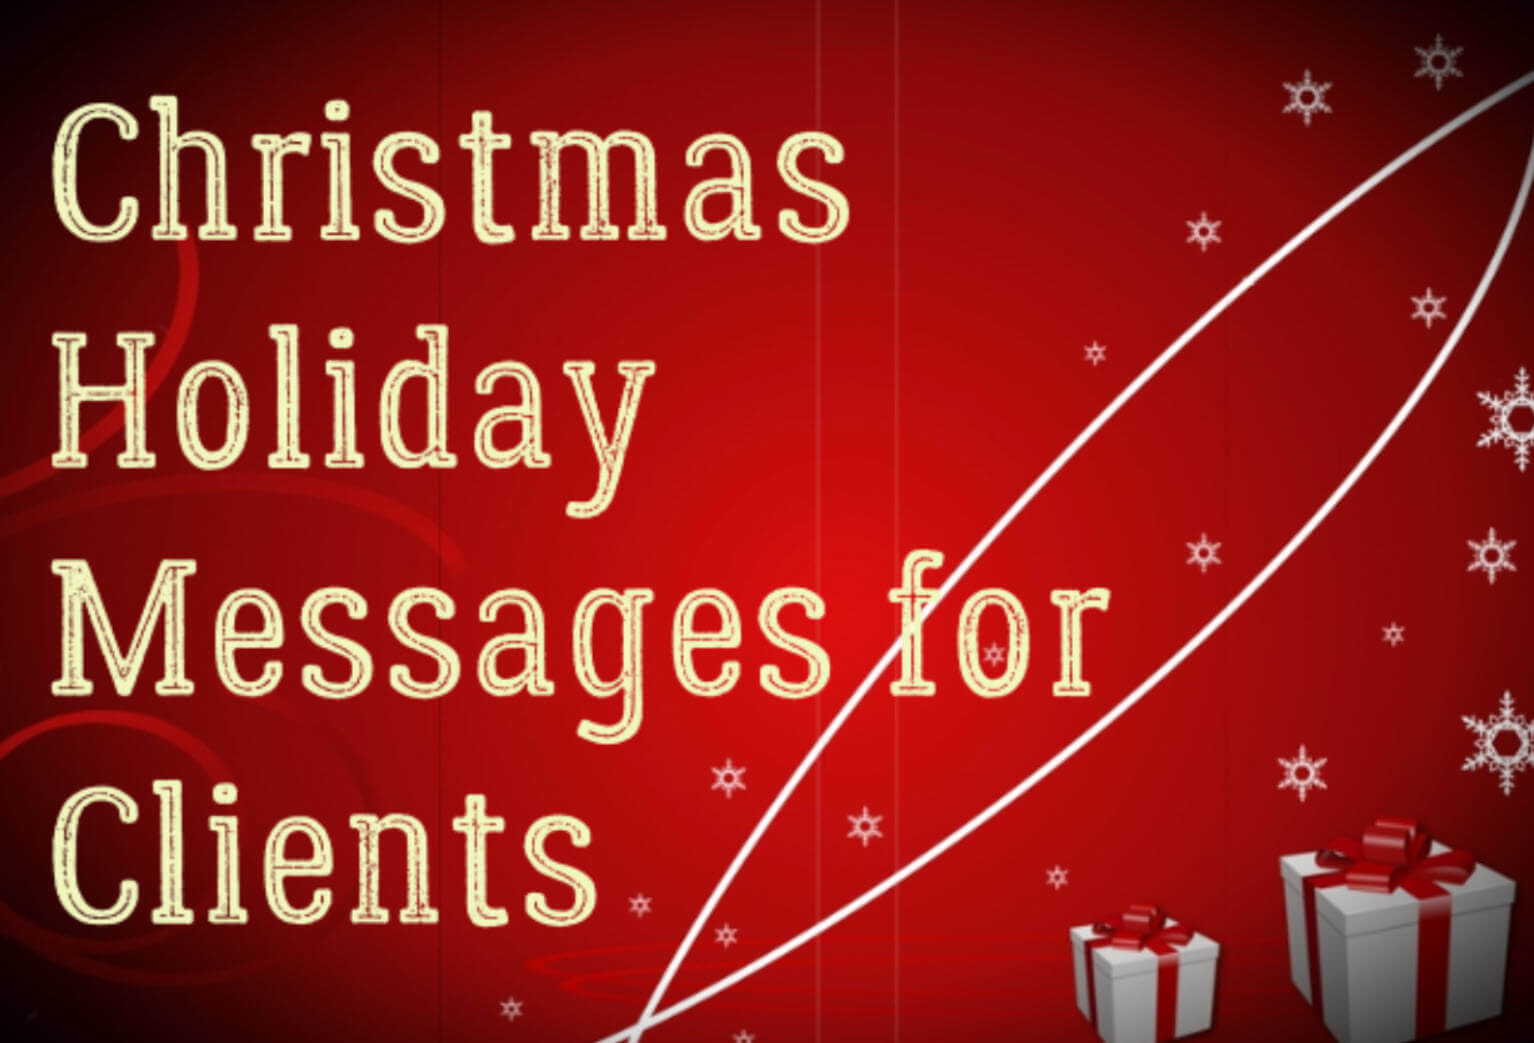 Christmas Holiday Messages for Clients